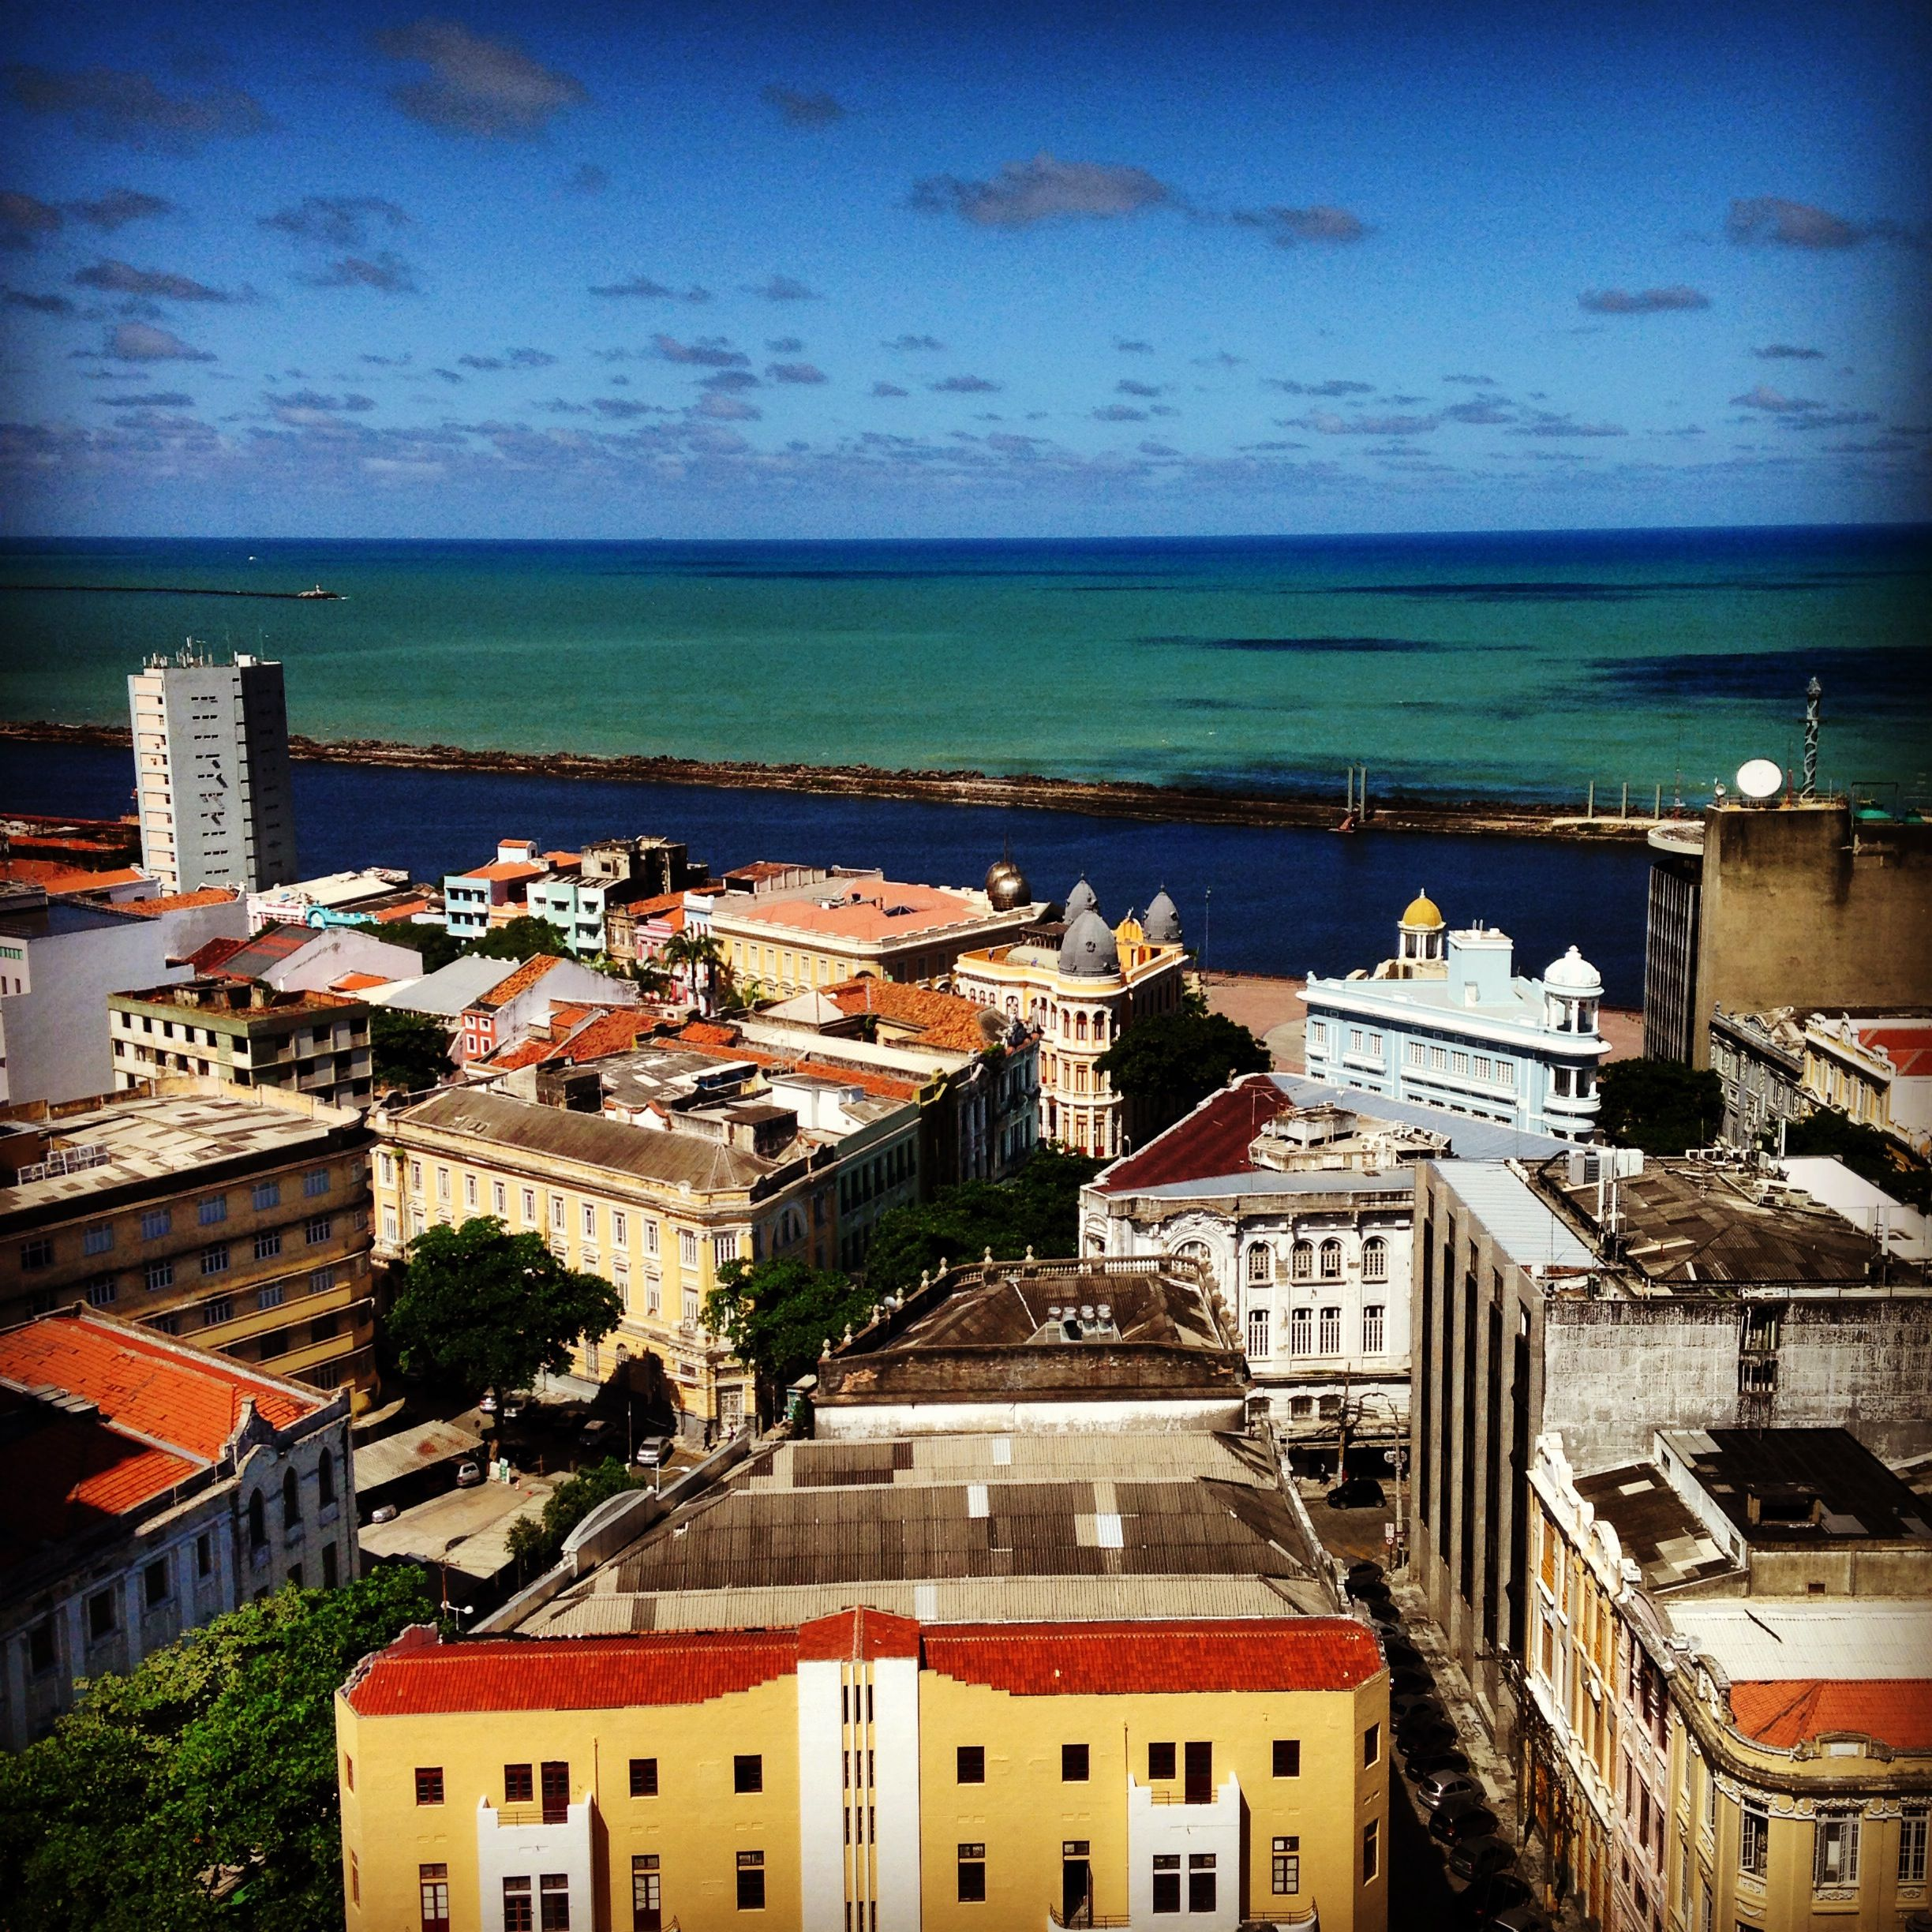 Recife by our Local Friend Roderick Jordão. Book him now for an incredible Local Experience https://www.rentalocalfriend.com/en/friends/roderick_jordao #recife #pernambuco #brazil #localtips #localexperience #travel #traveltips